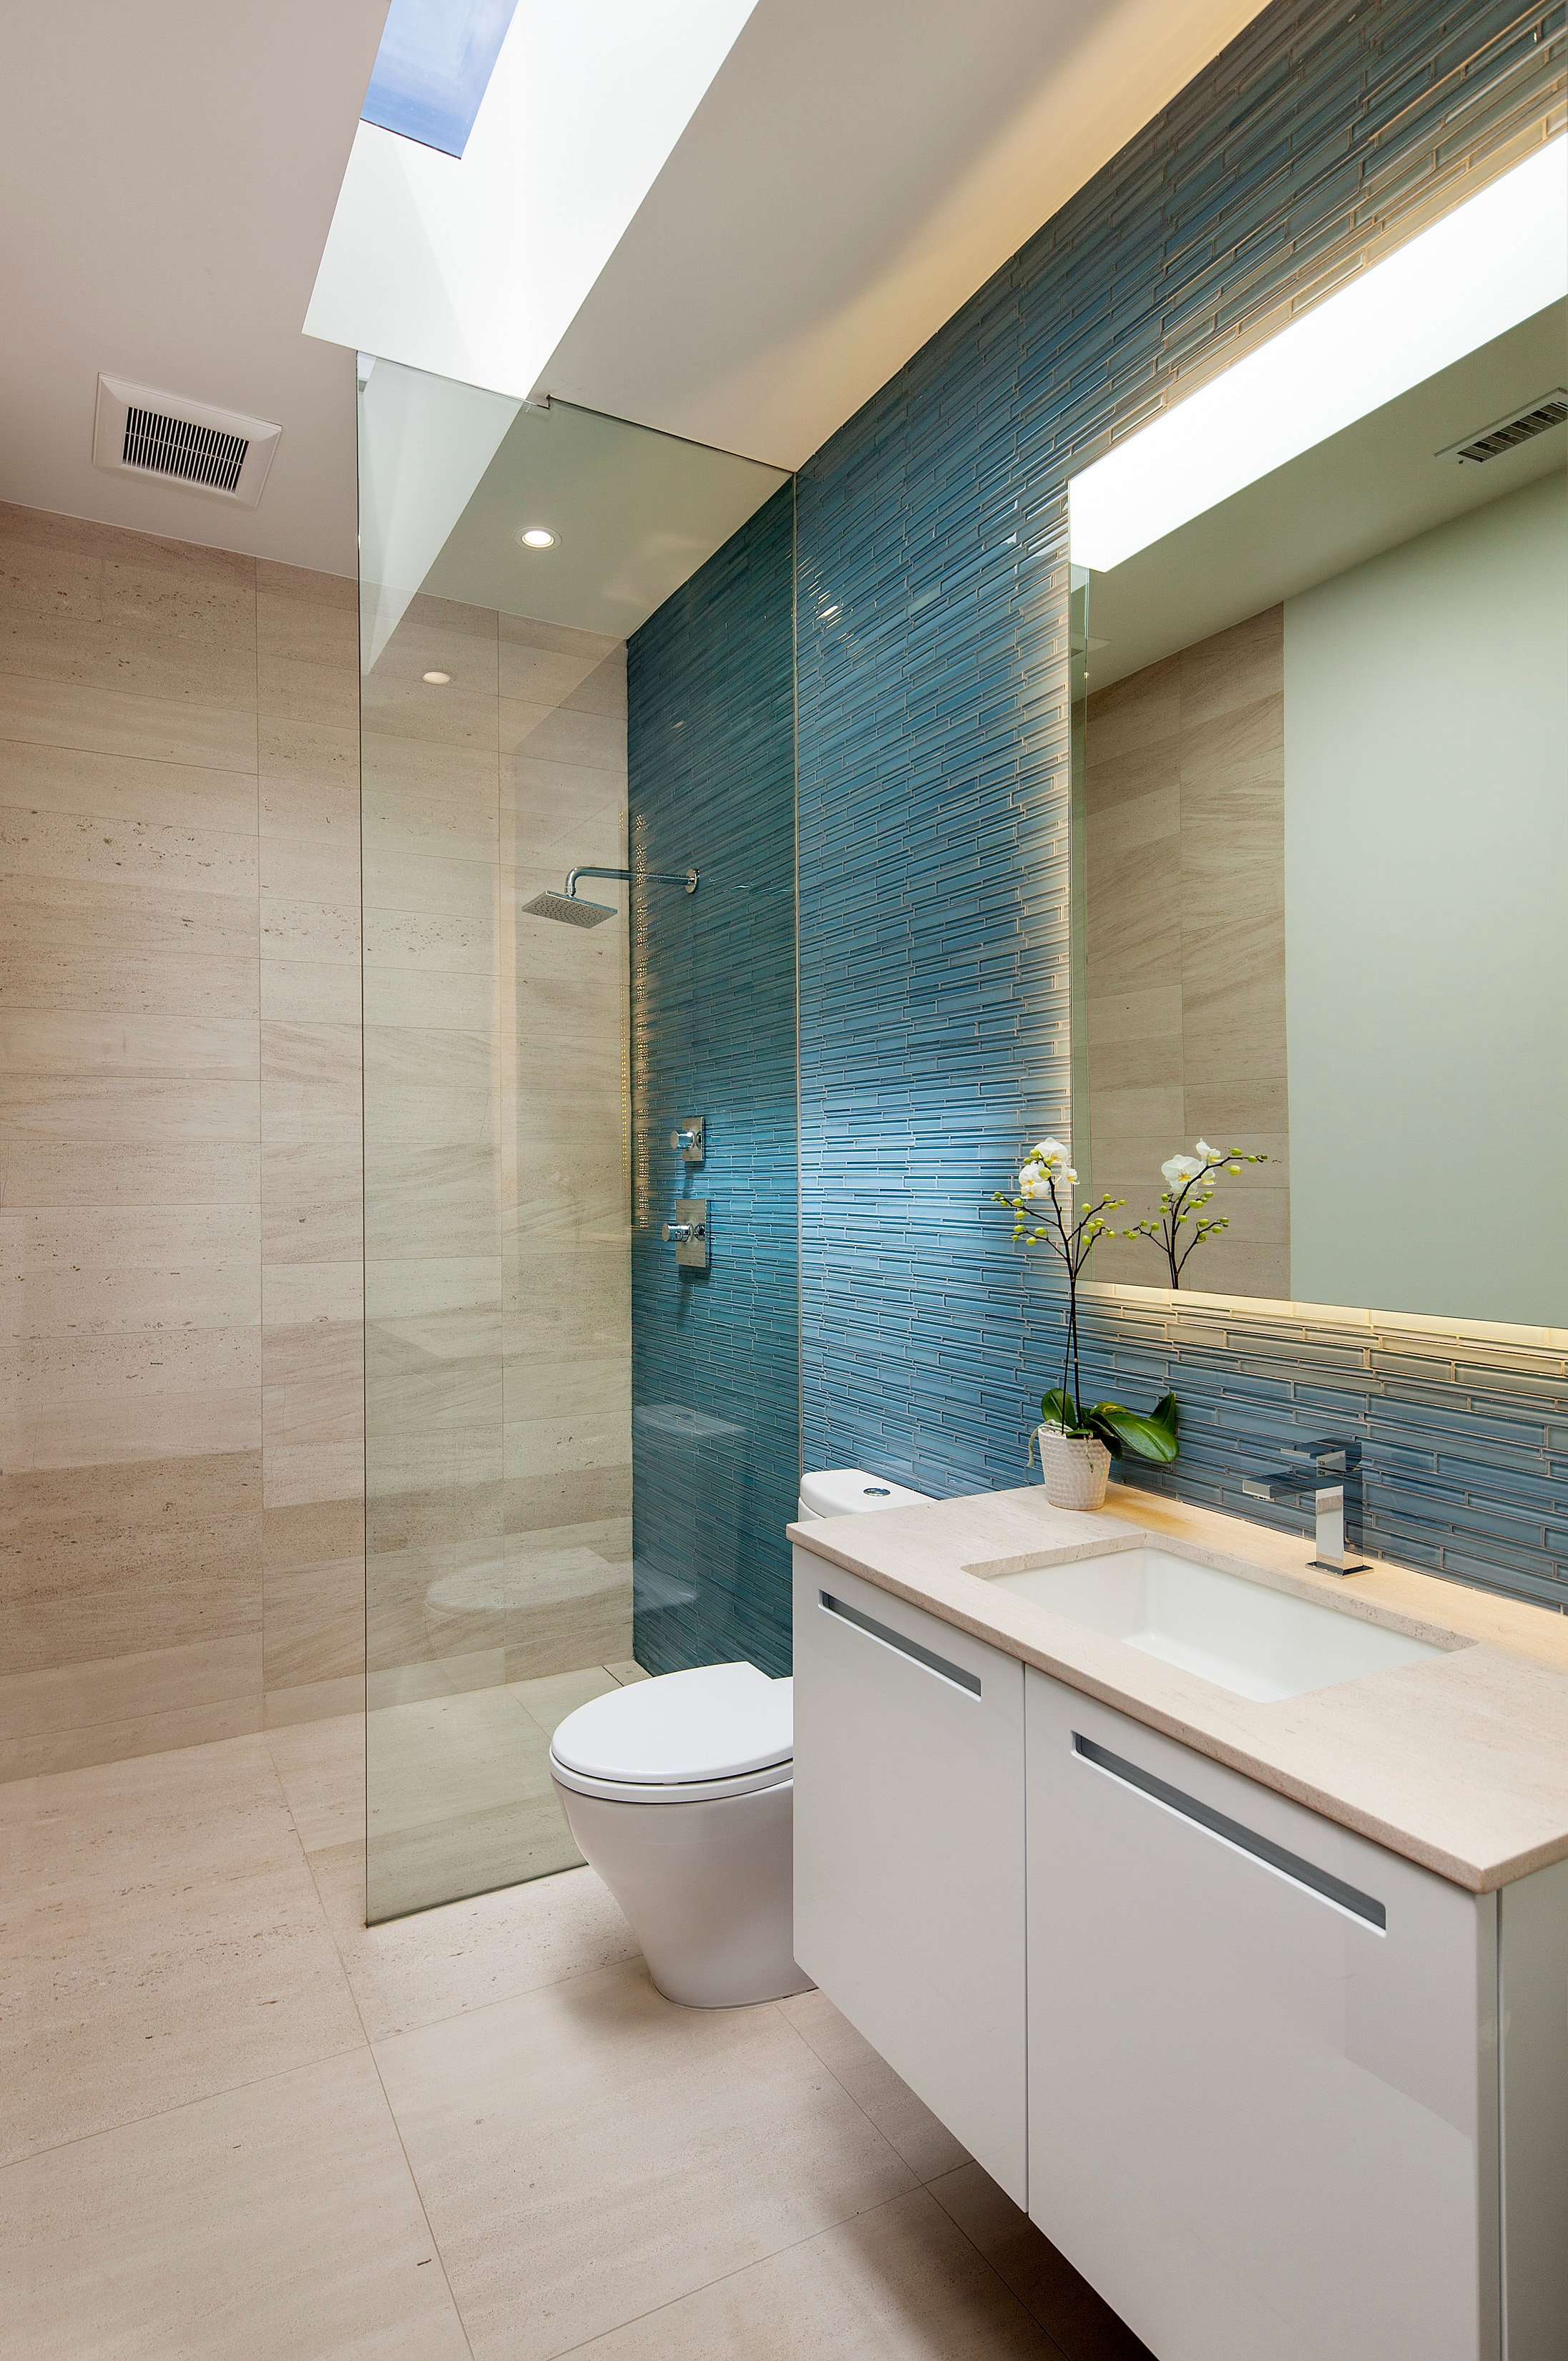 Bathroom features another novel tone: narrow blue tile across vanity wall breaks up the neutral tones. Marble topped counter and seamless glass shower stand below sky light slit.